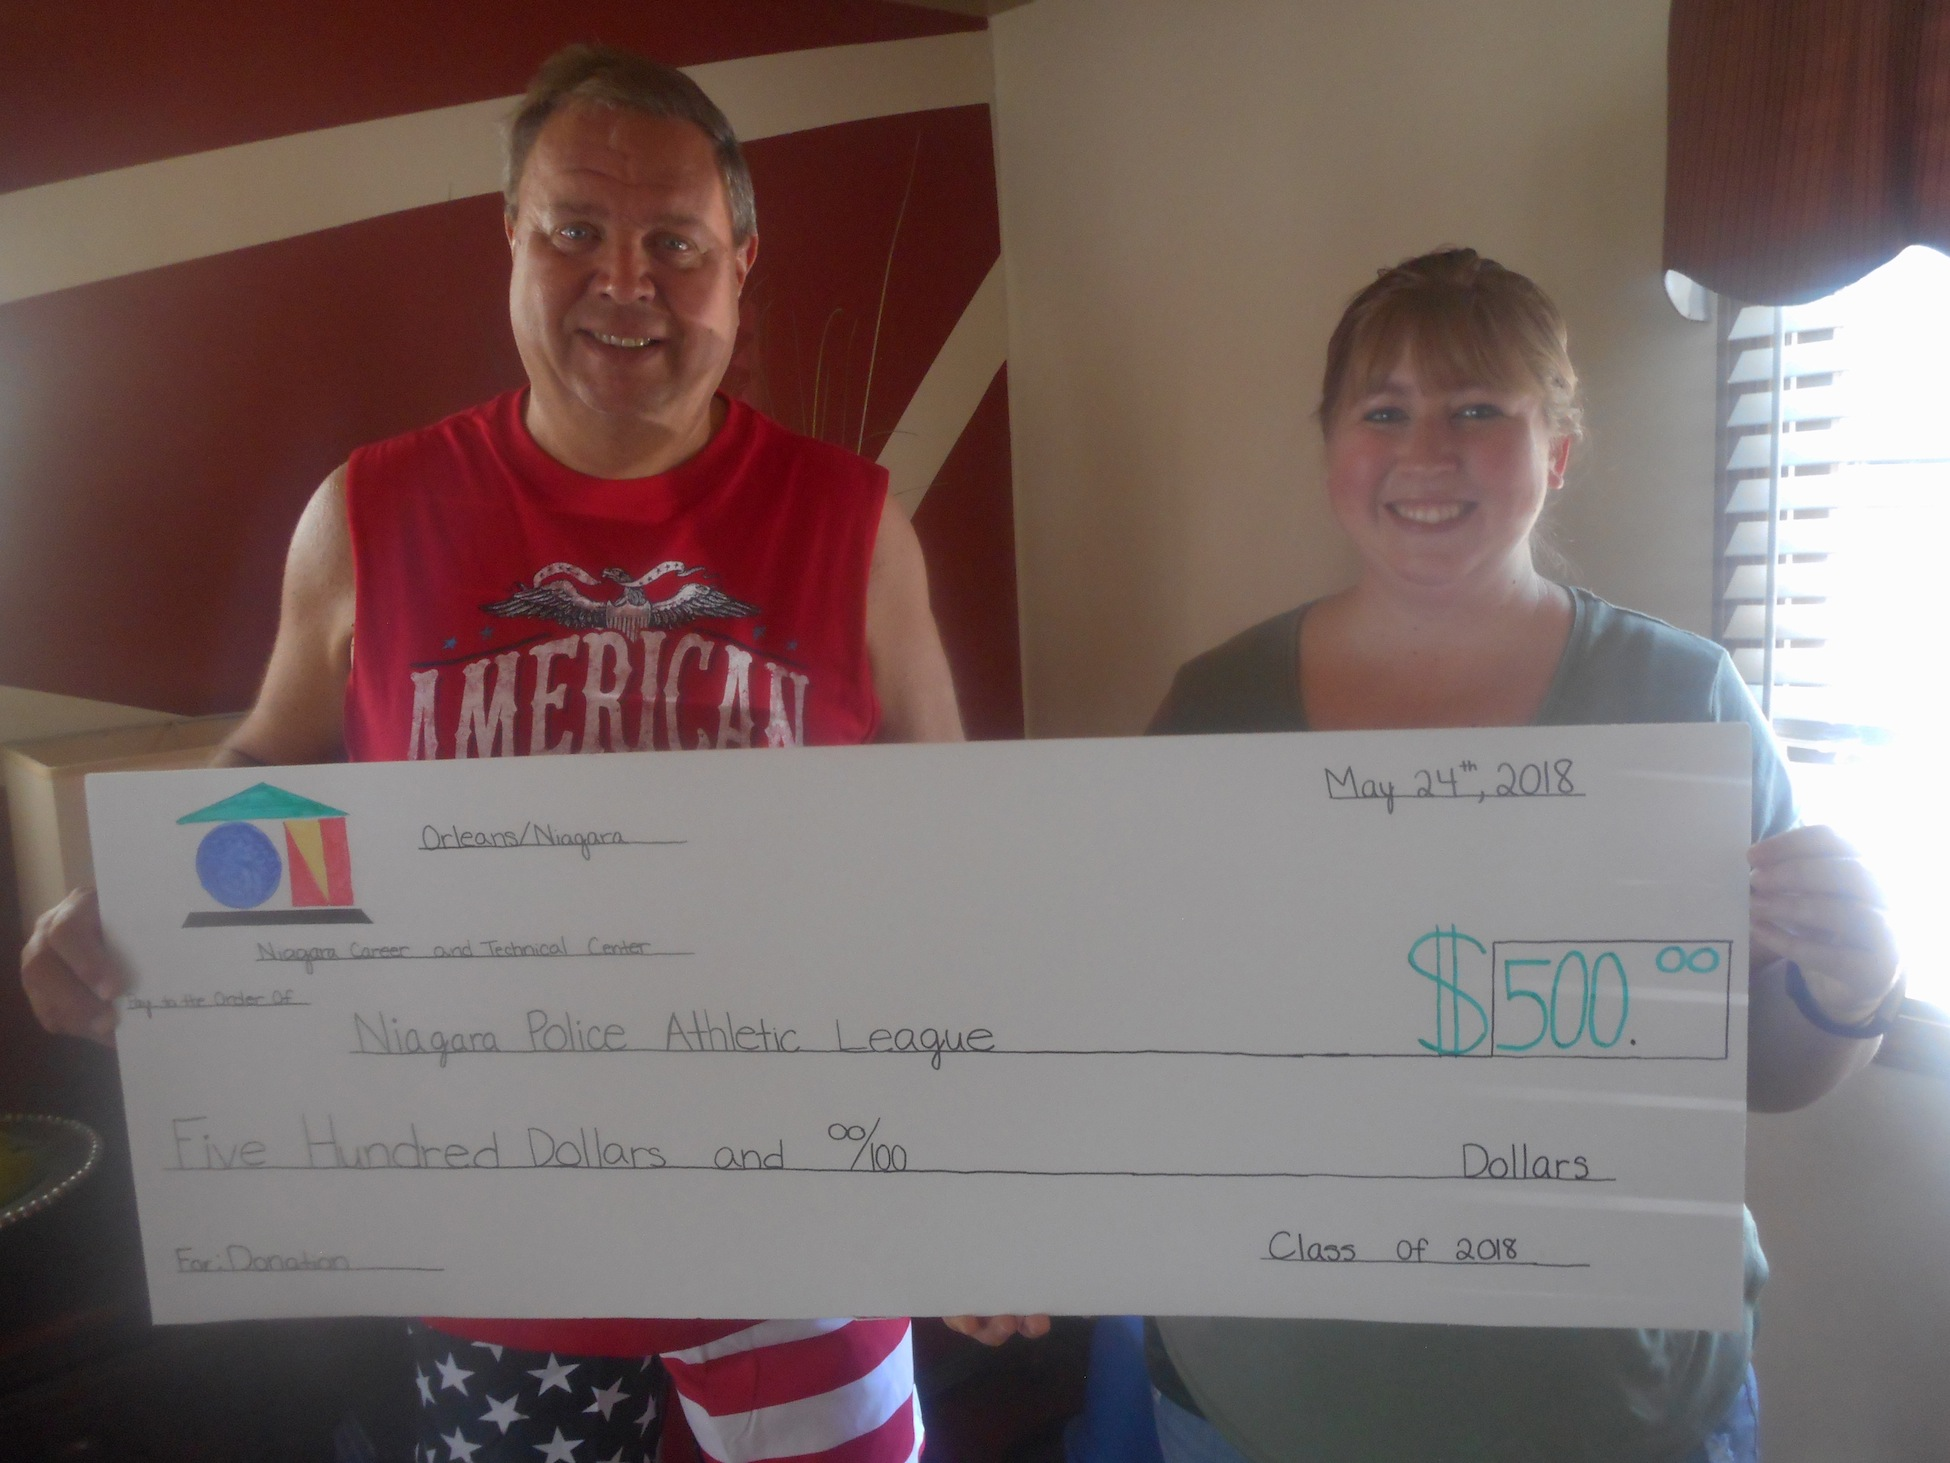 PAL President George Ihle and PAL volunteer Jennifer Florio are pictured together holding a $500 check.